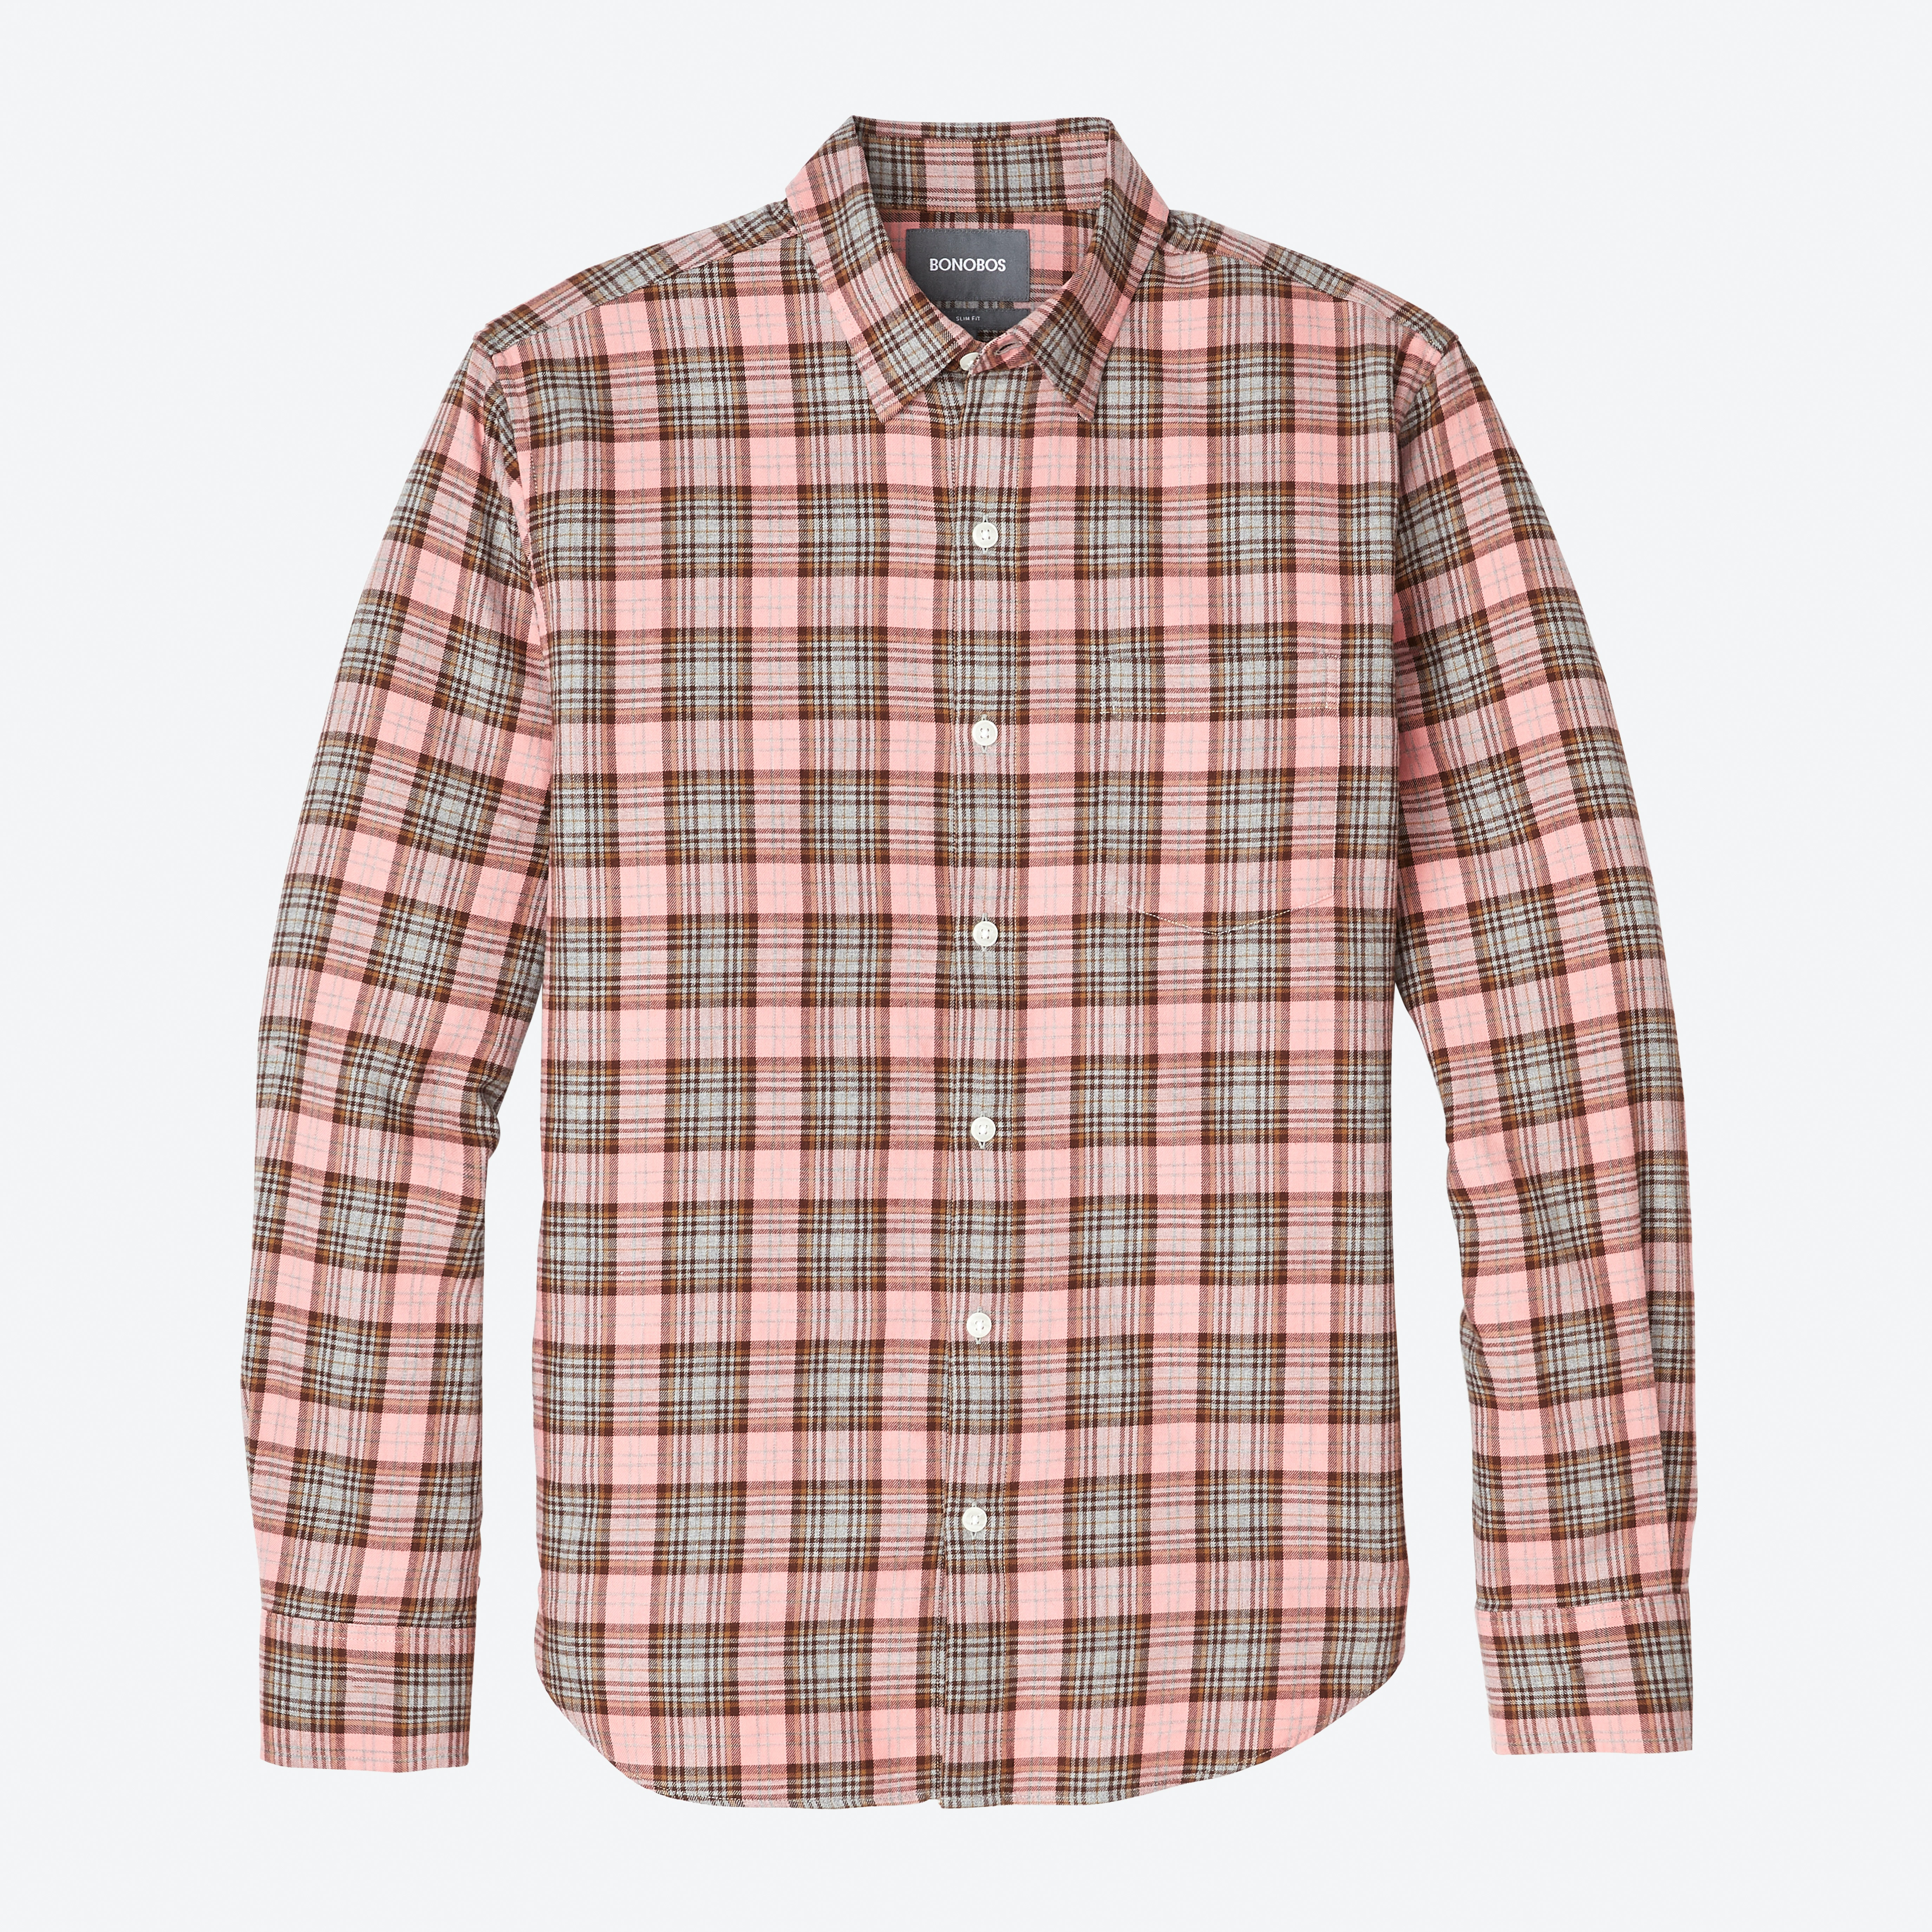 8ce4127733b7 Men s Casual Shirts in Every Fit